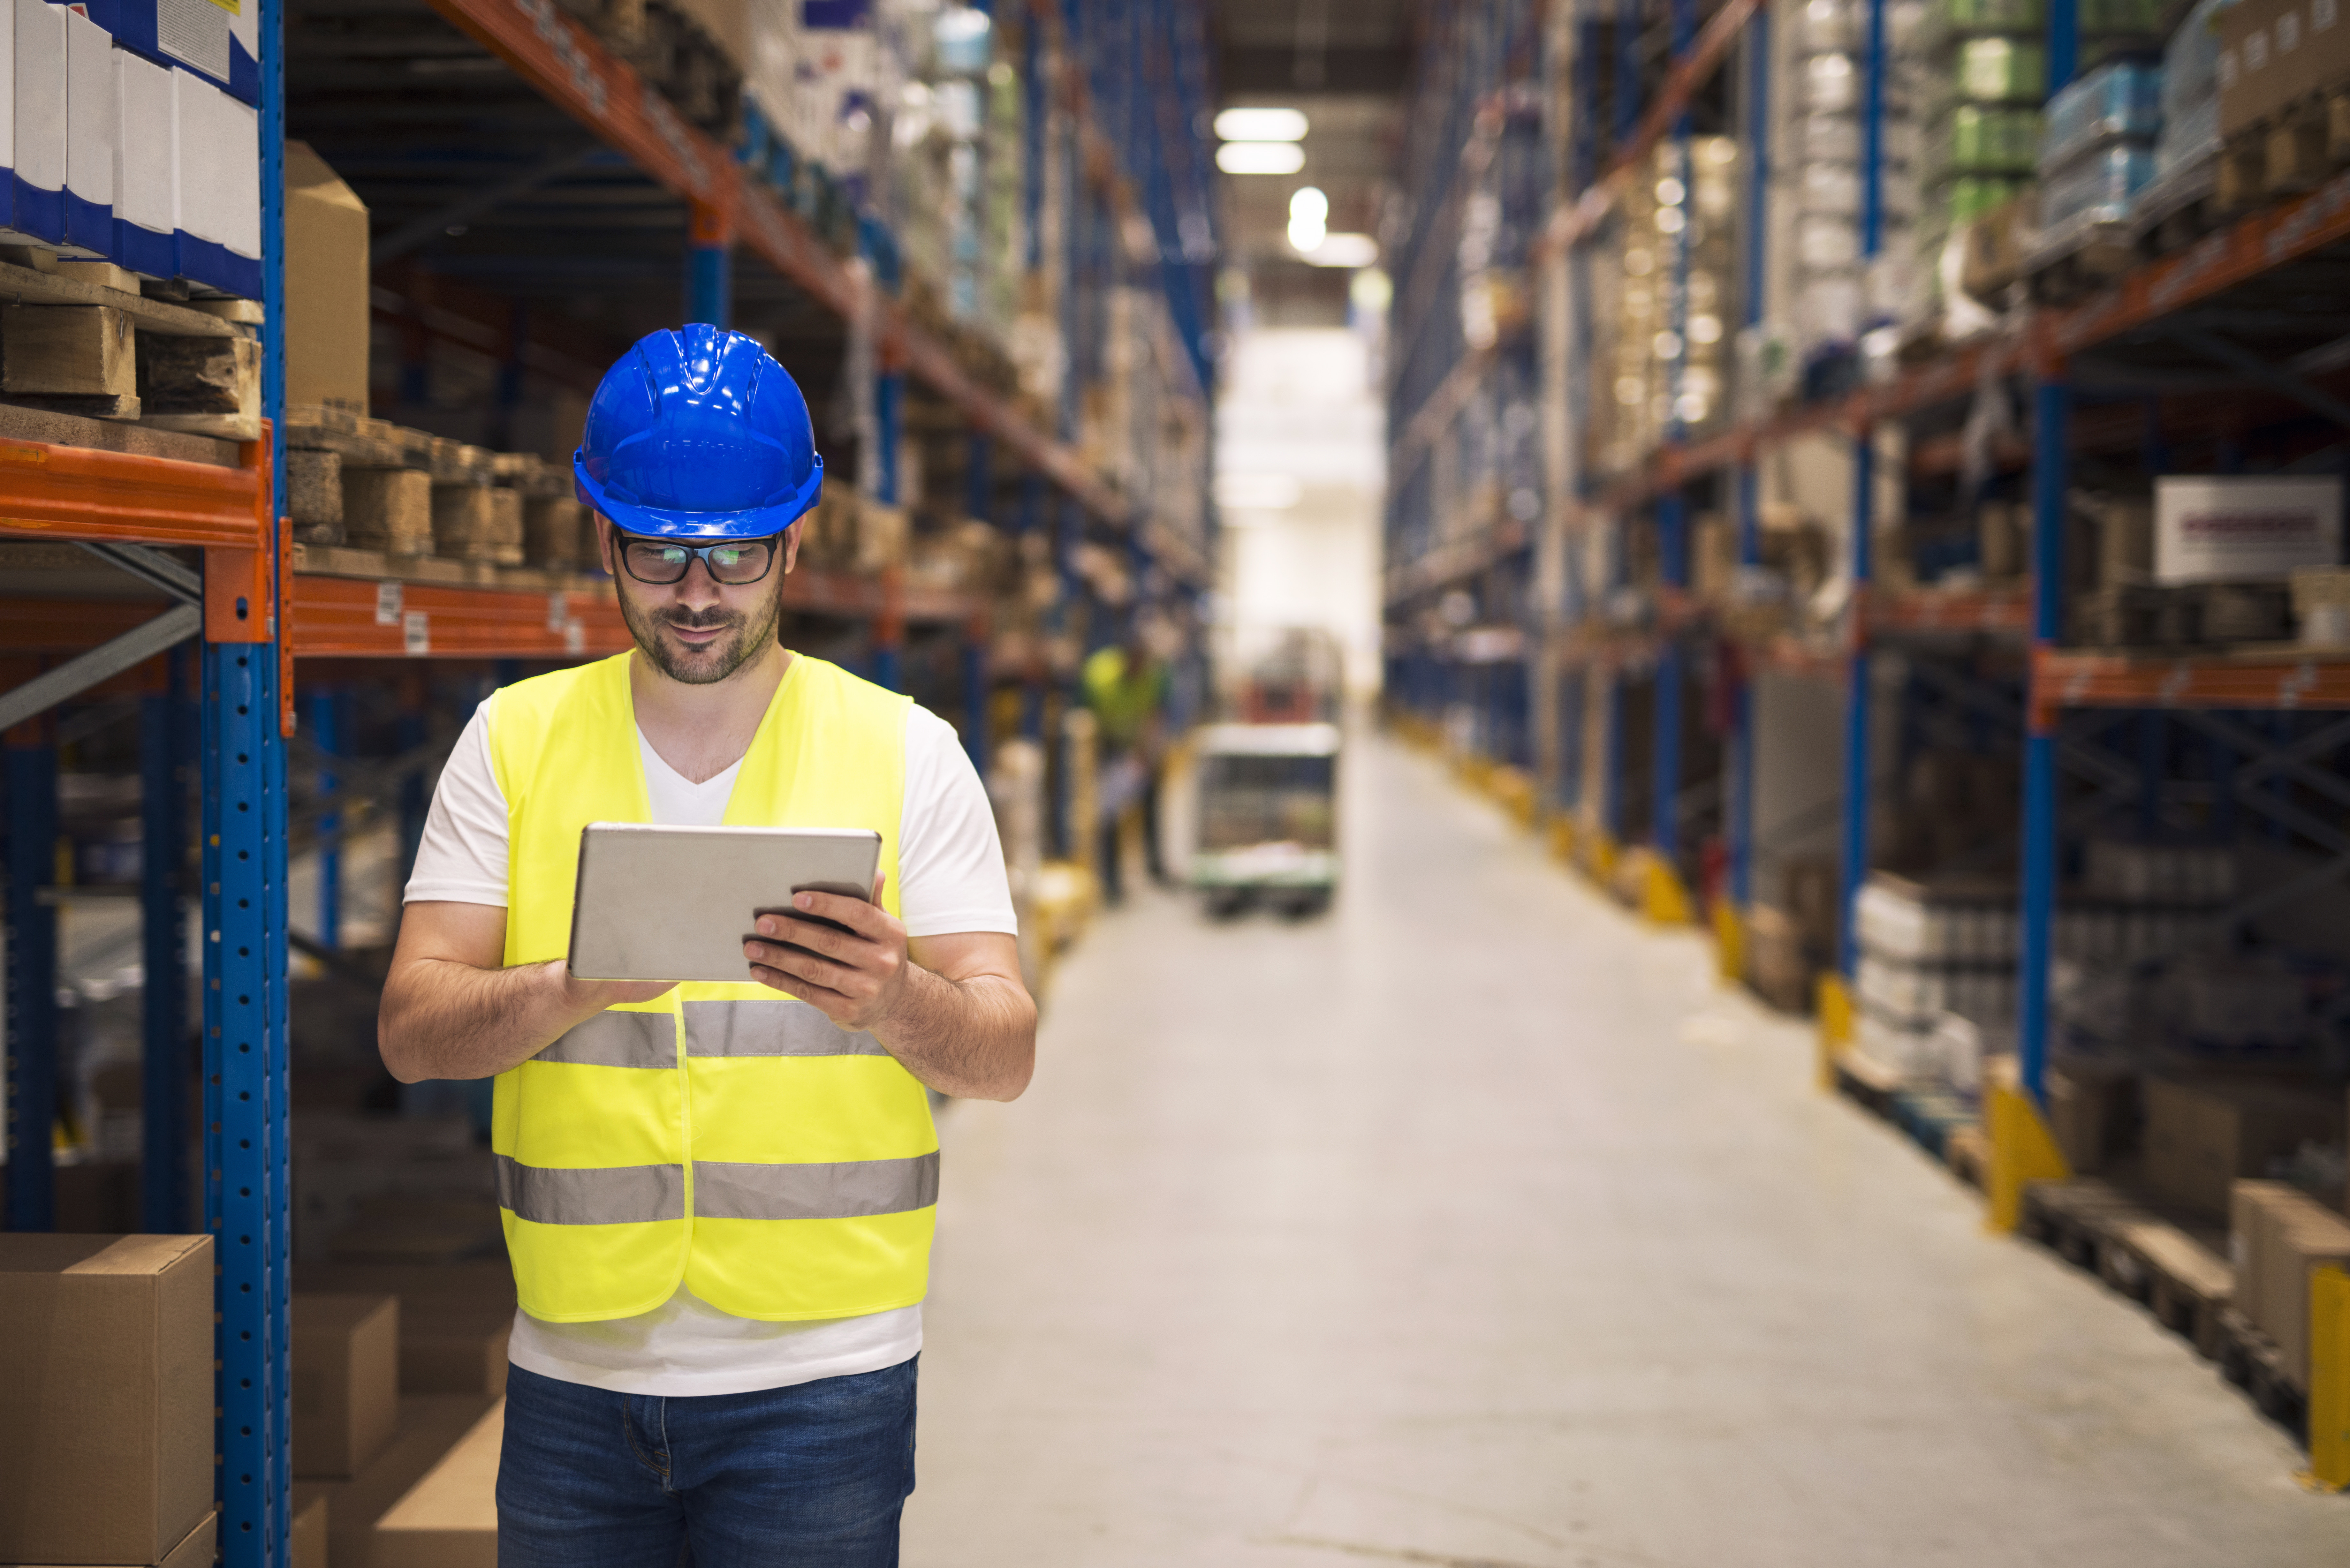 Warehouse worker checking inventory on his tablet while walking in large storage department with shelves and packages in background.